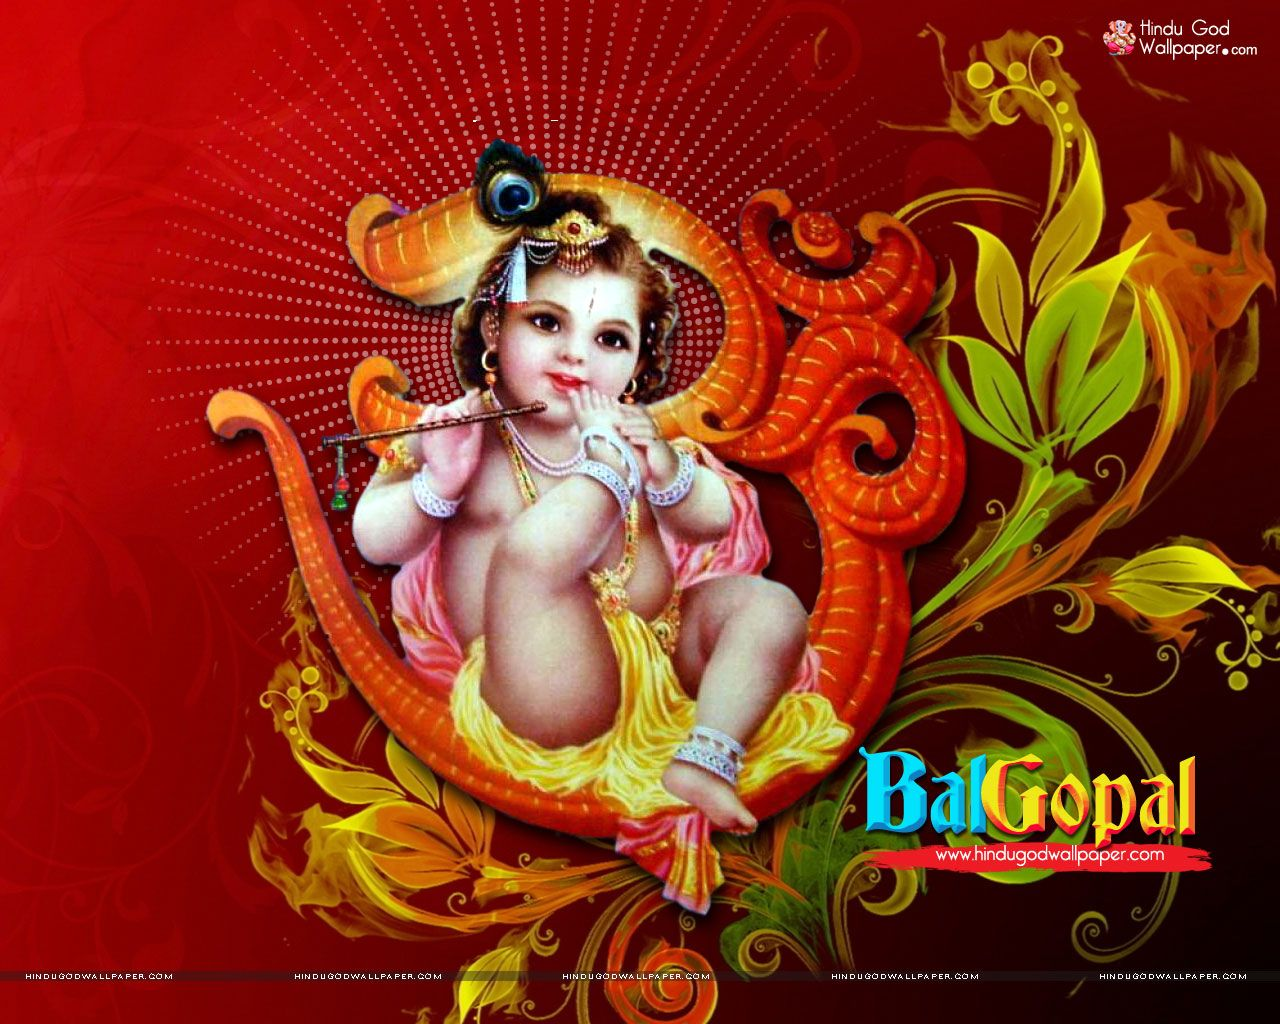 Wallpaper of krishna for mobile - Find This Pin And More On Bal Krishna Wallpapers